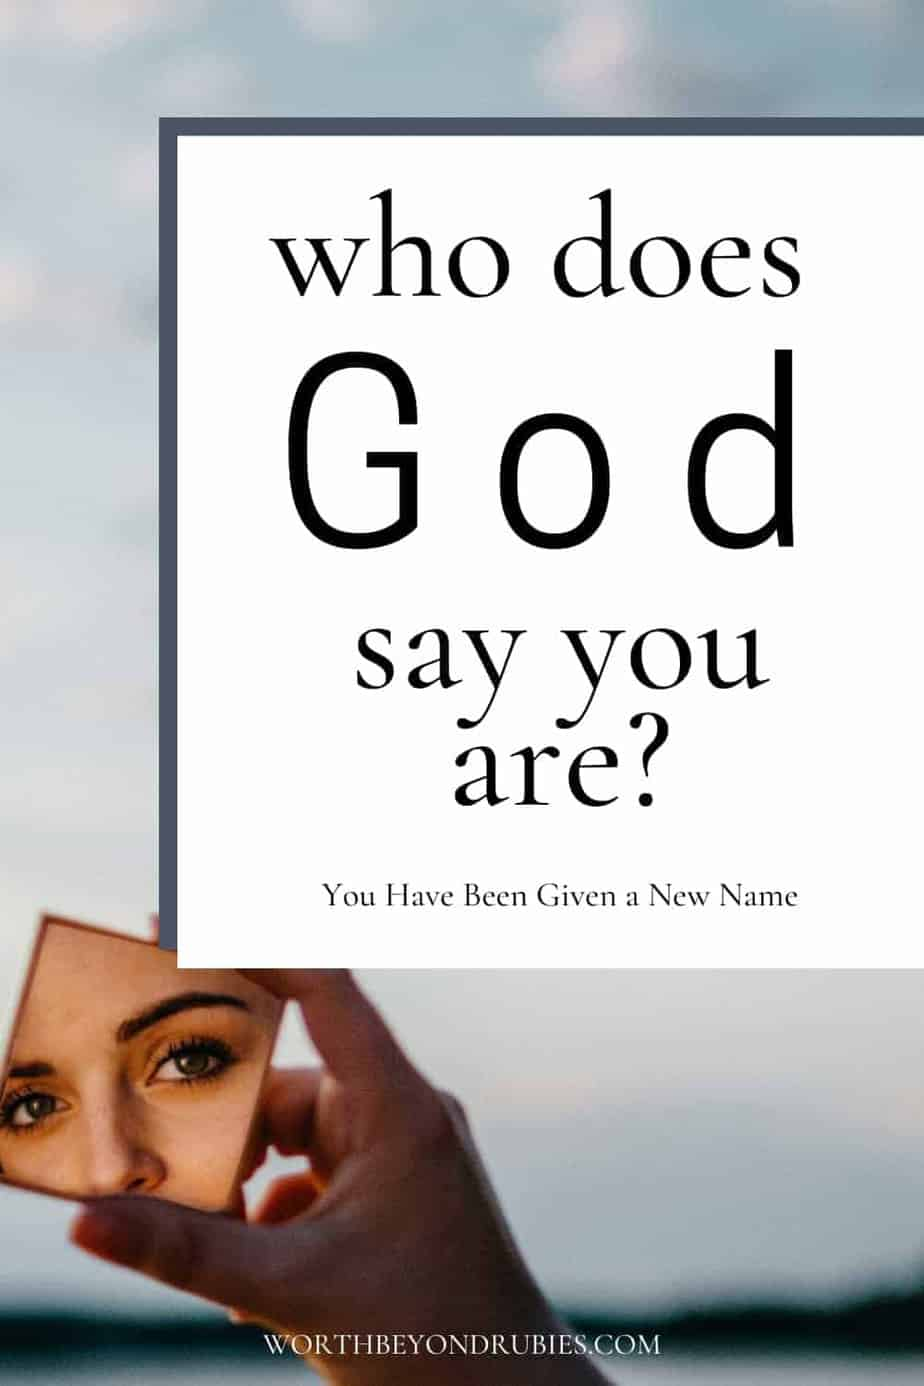 An image of a person's hand facing a lake at dusk with a mirror in their hand and a reflection of a woman's eyes and nose in the mirror and text that says Who God Says You Are - You Have a New Name